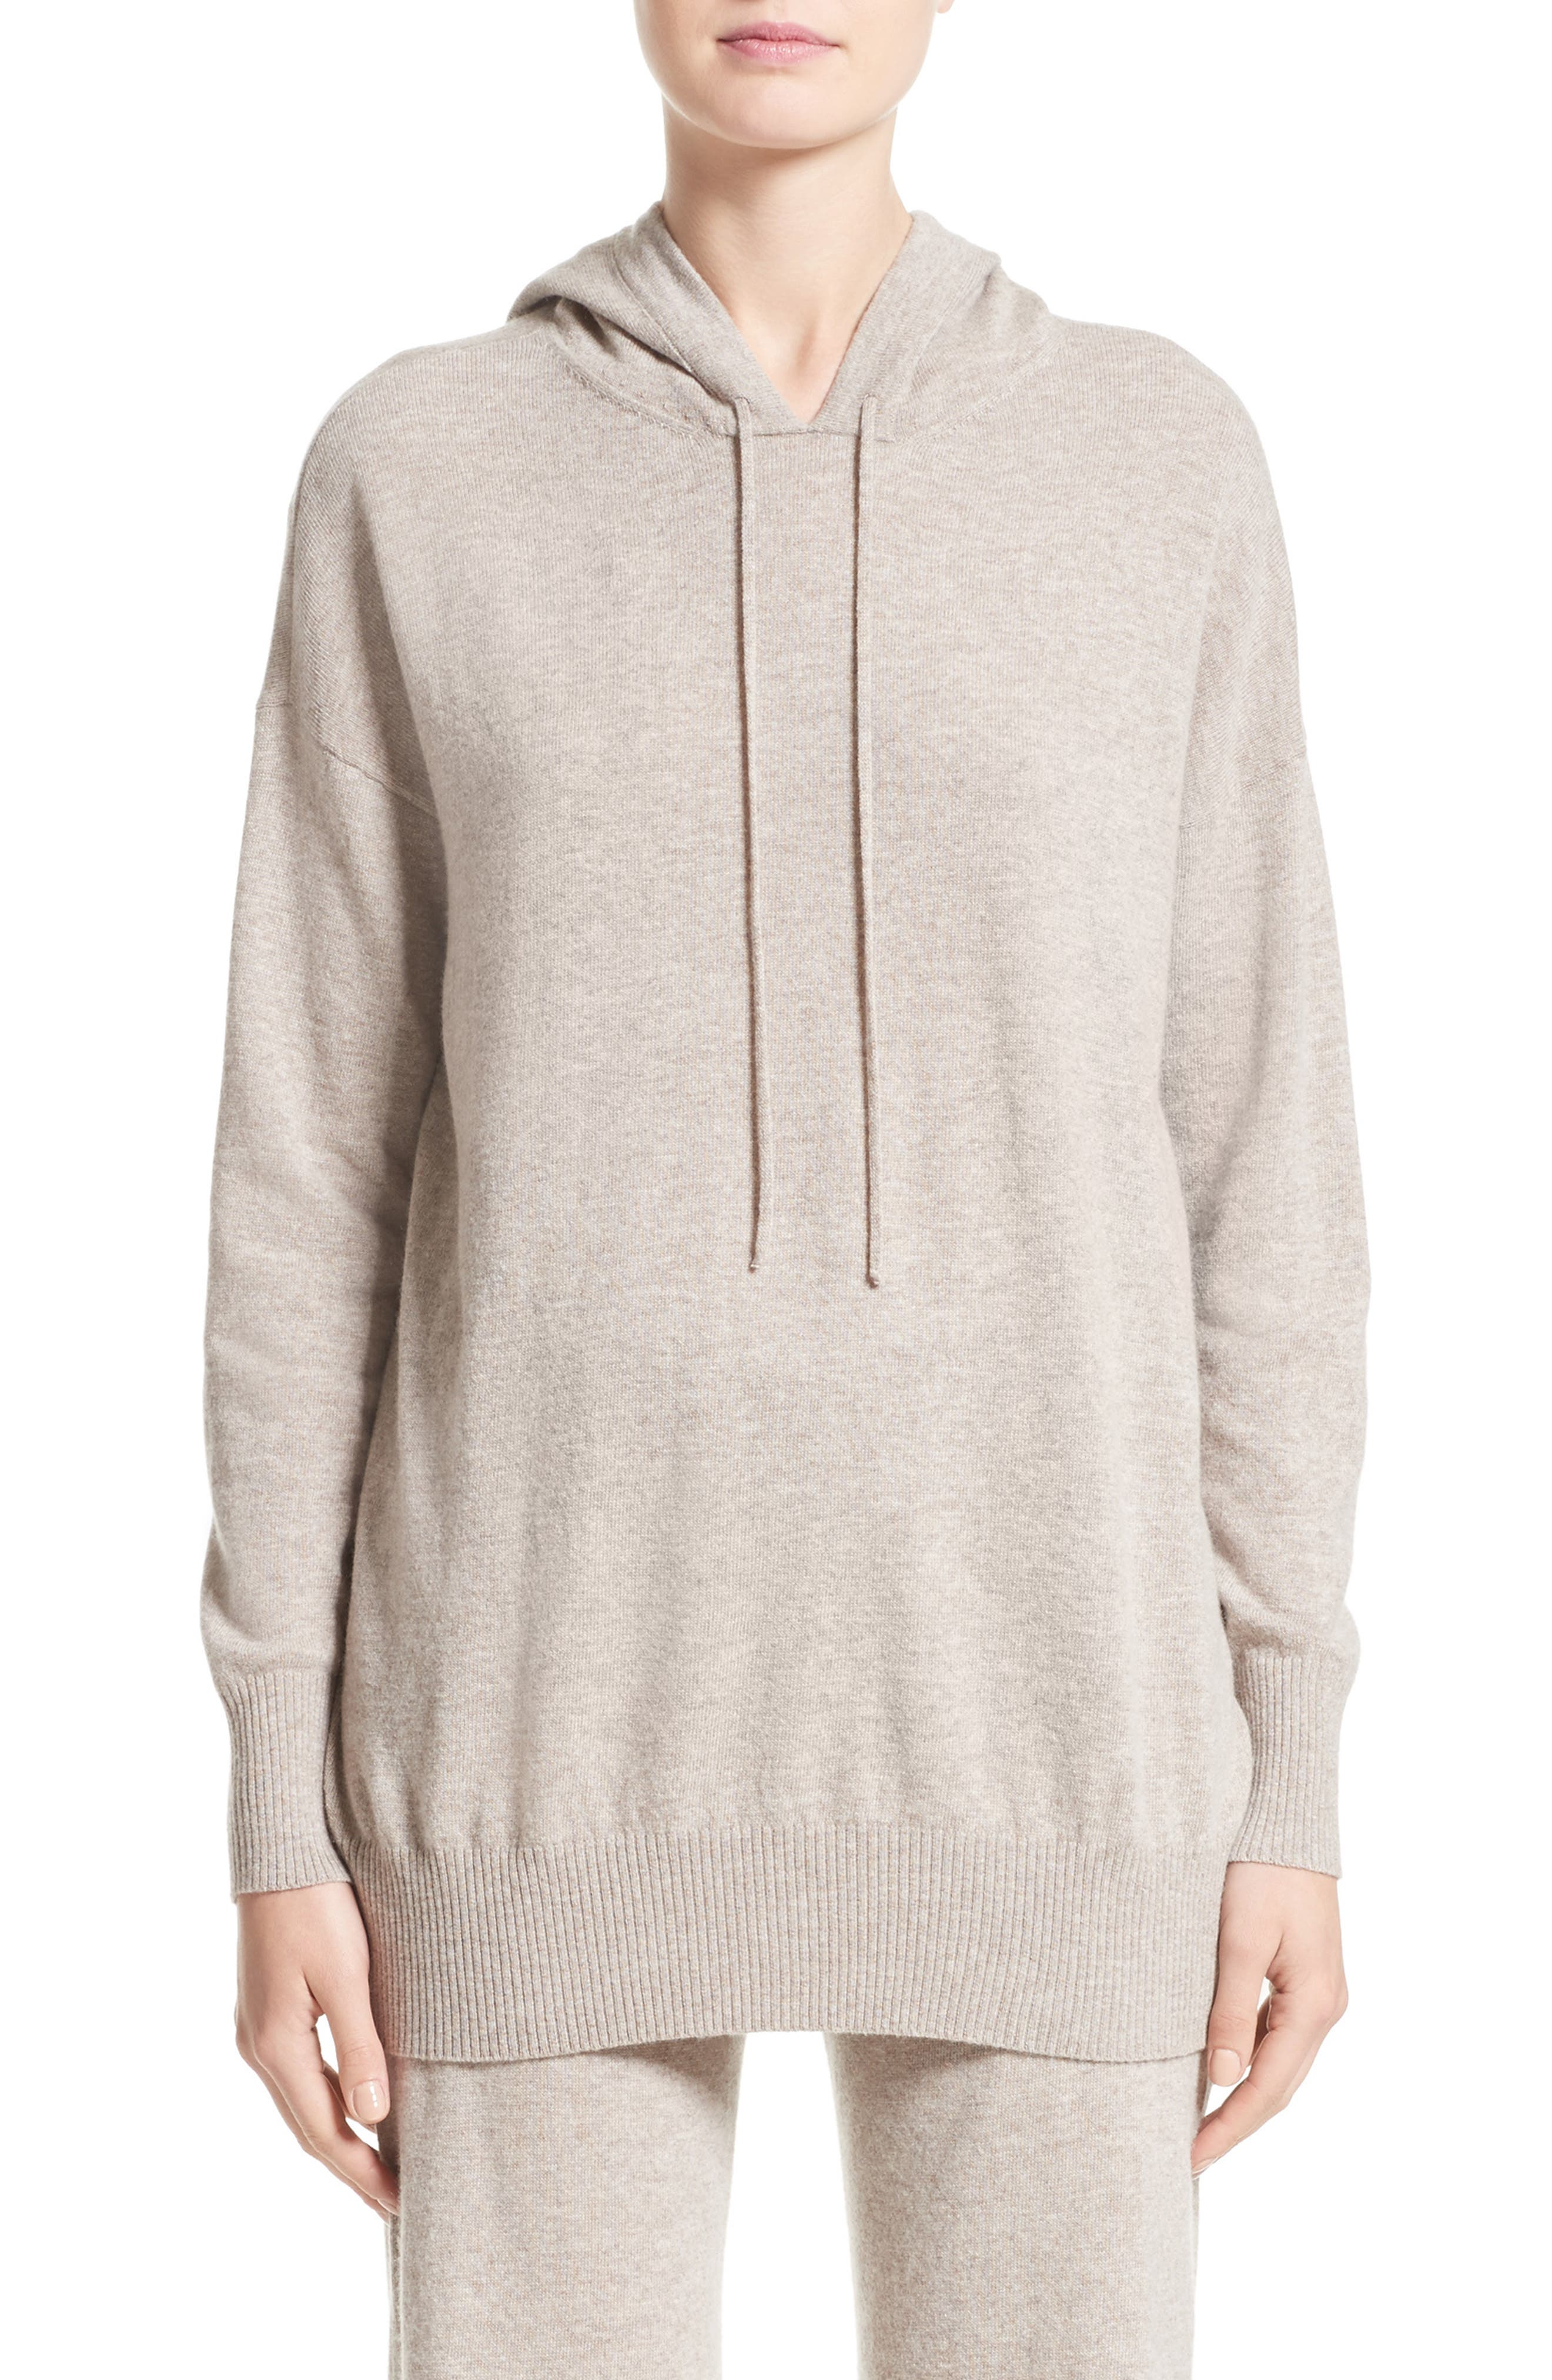 Nitra Wool & Cashmere Hooded Sweater,                             Main thumbnail 1, color,                             236